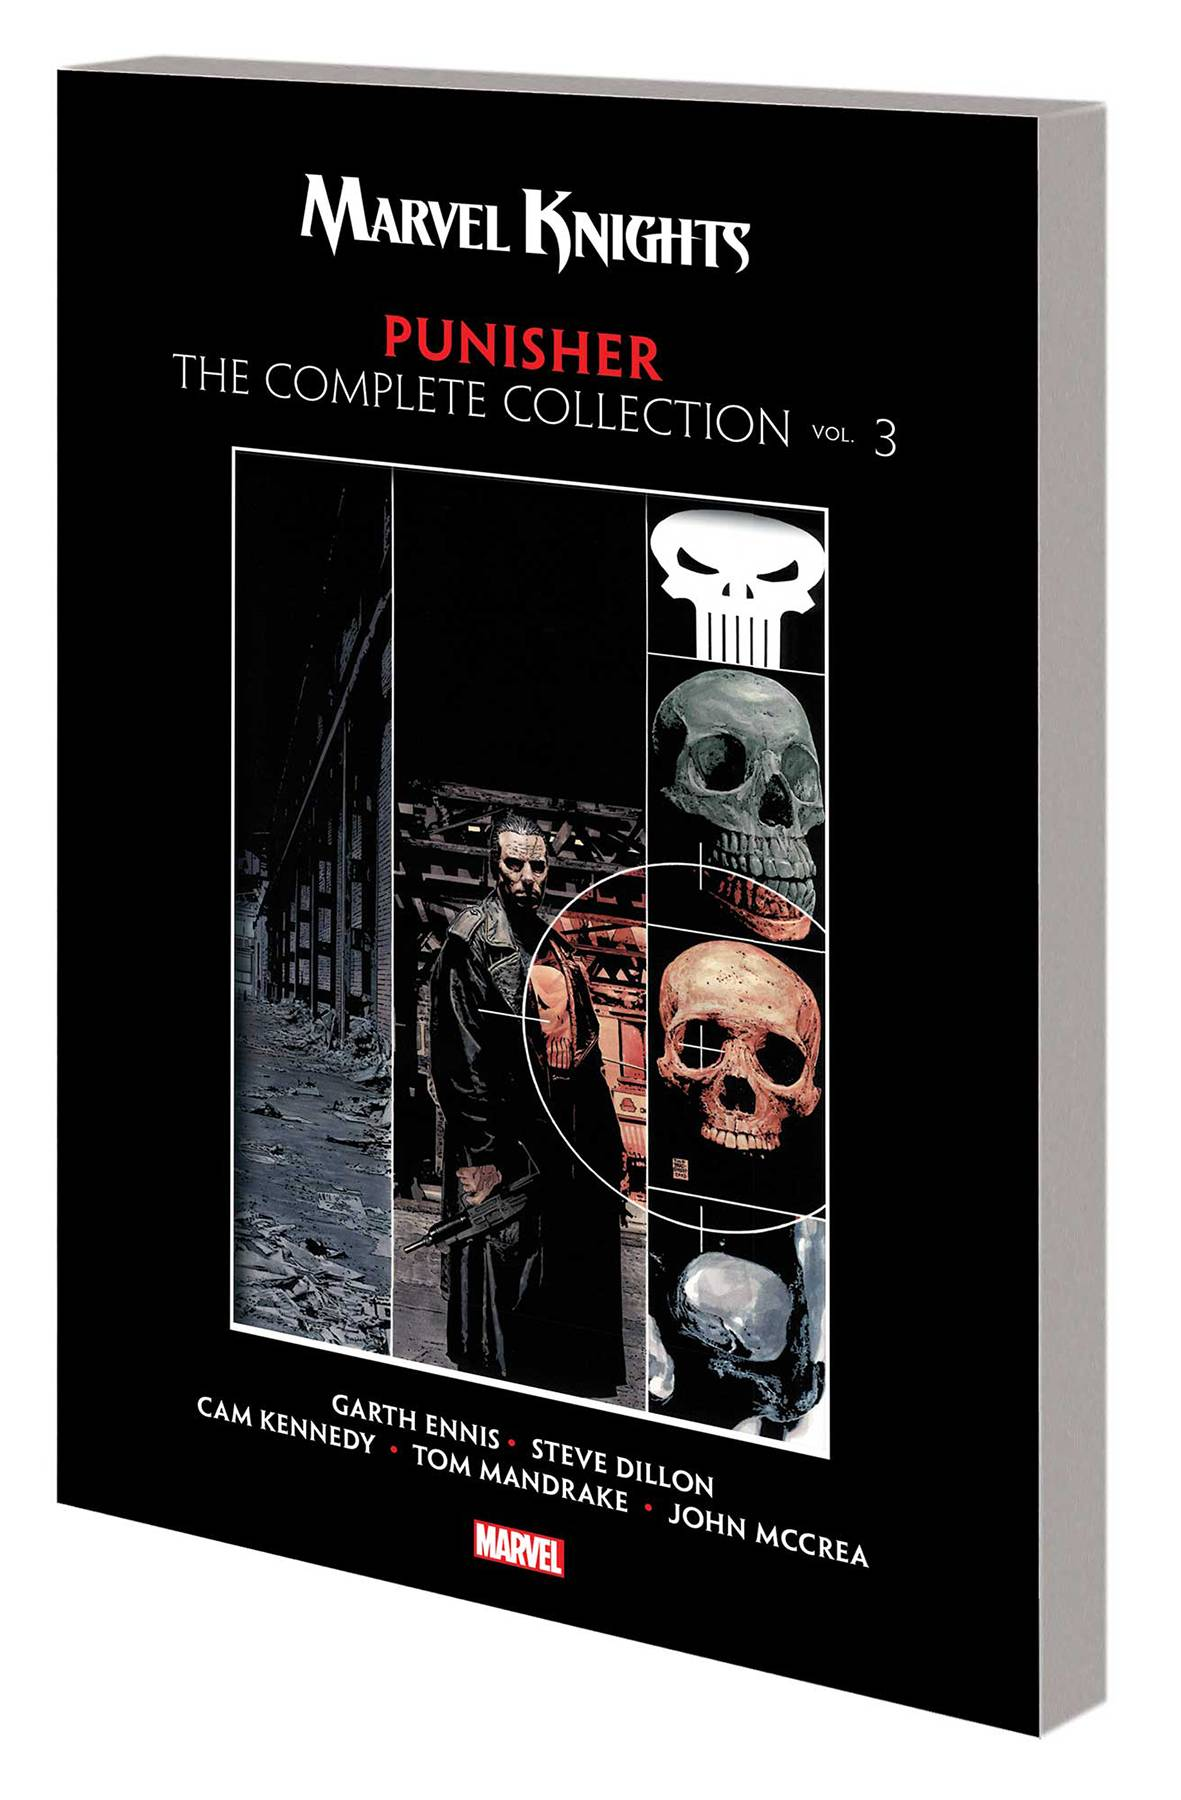 MARVEL KNIGHTS PUNISHER BY ENNIS COMPLETE COLLECTION TP 3.jpg